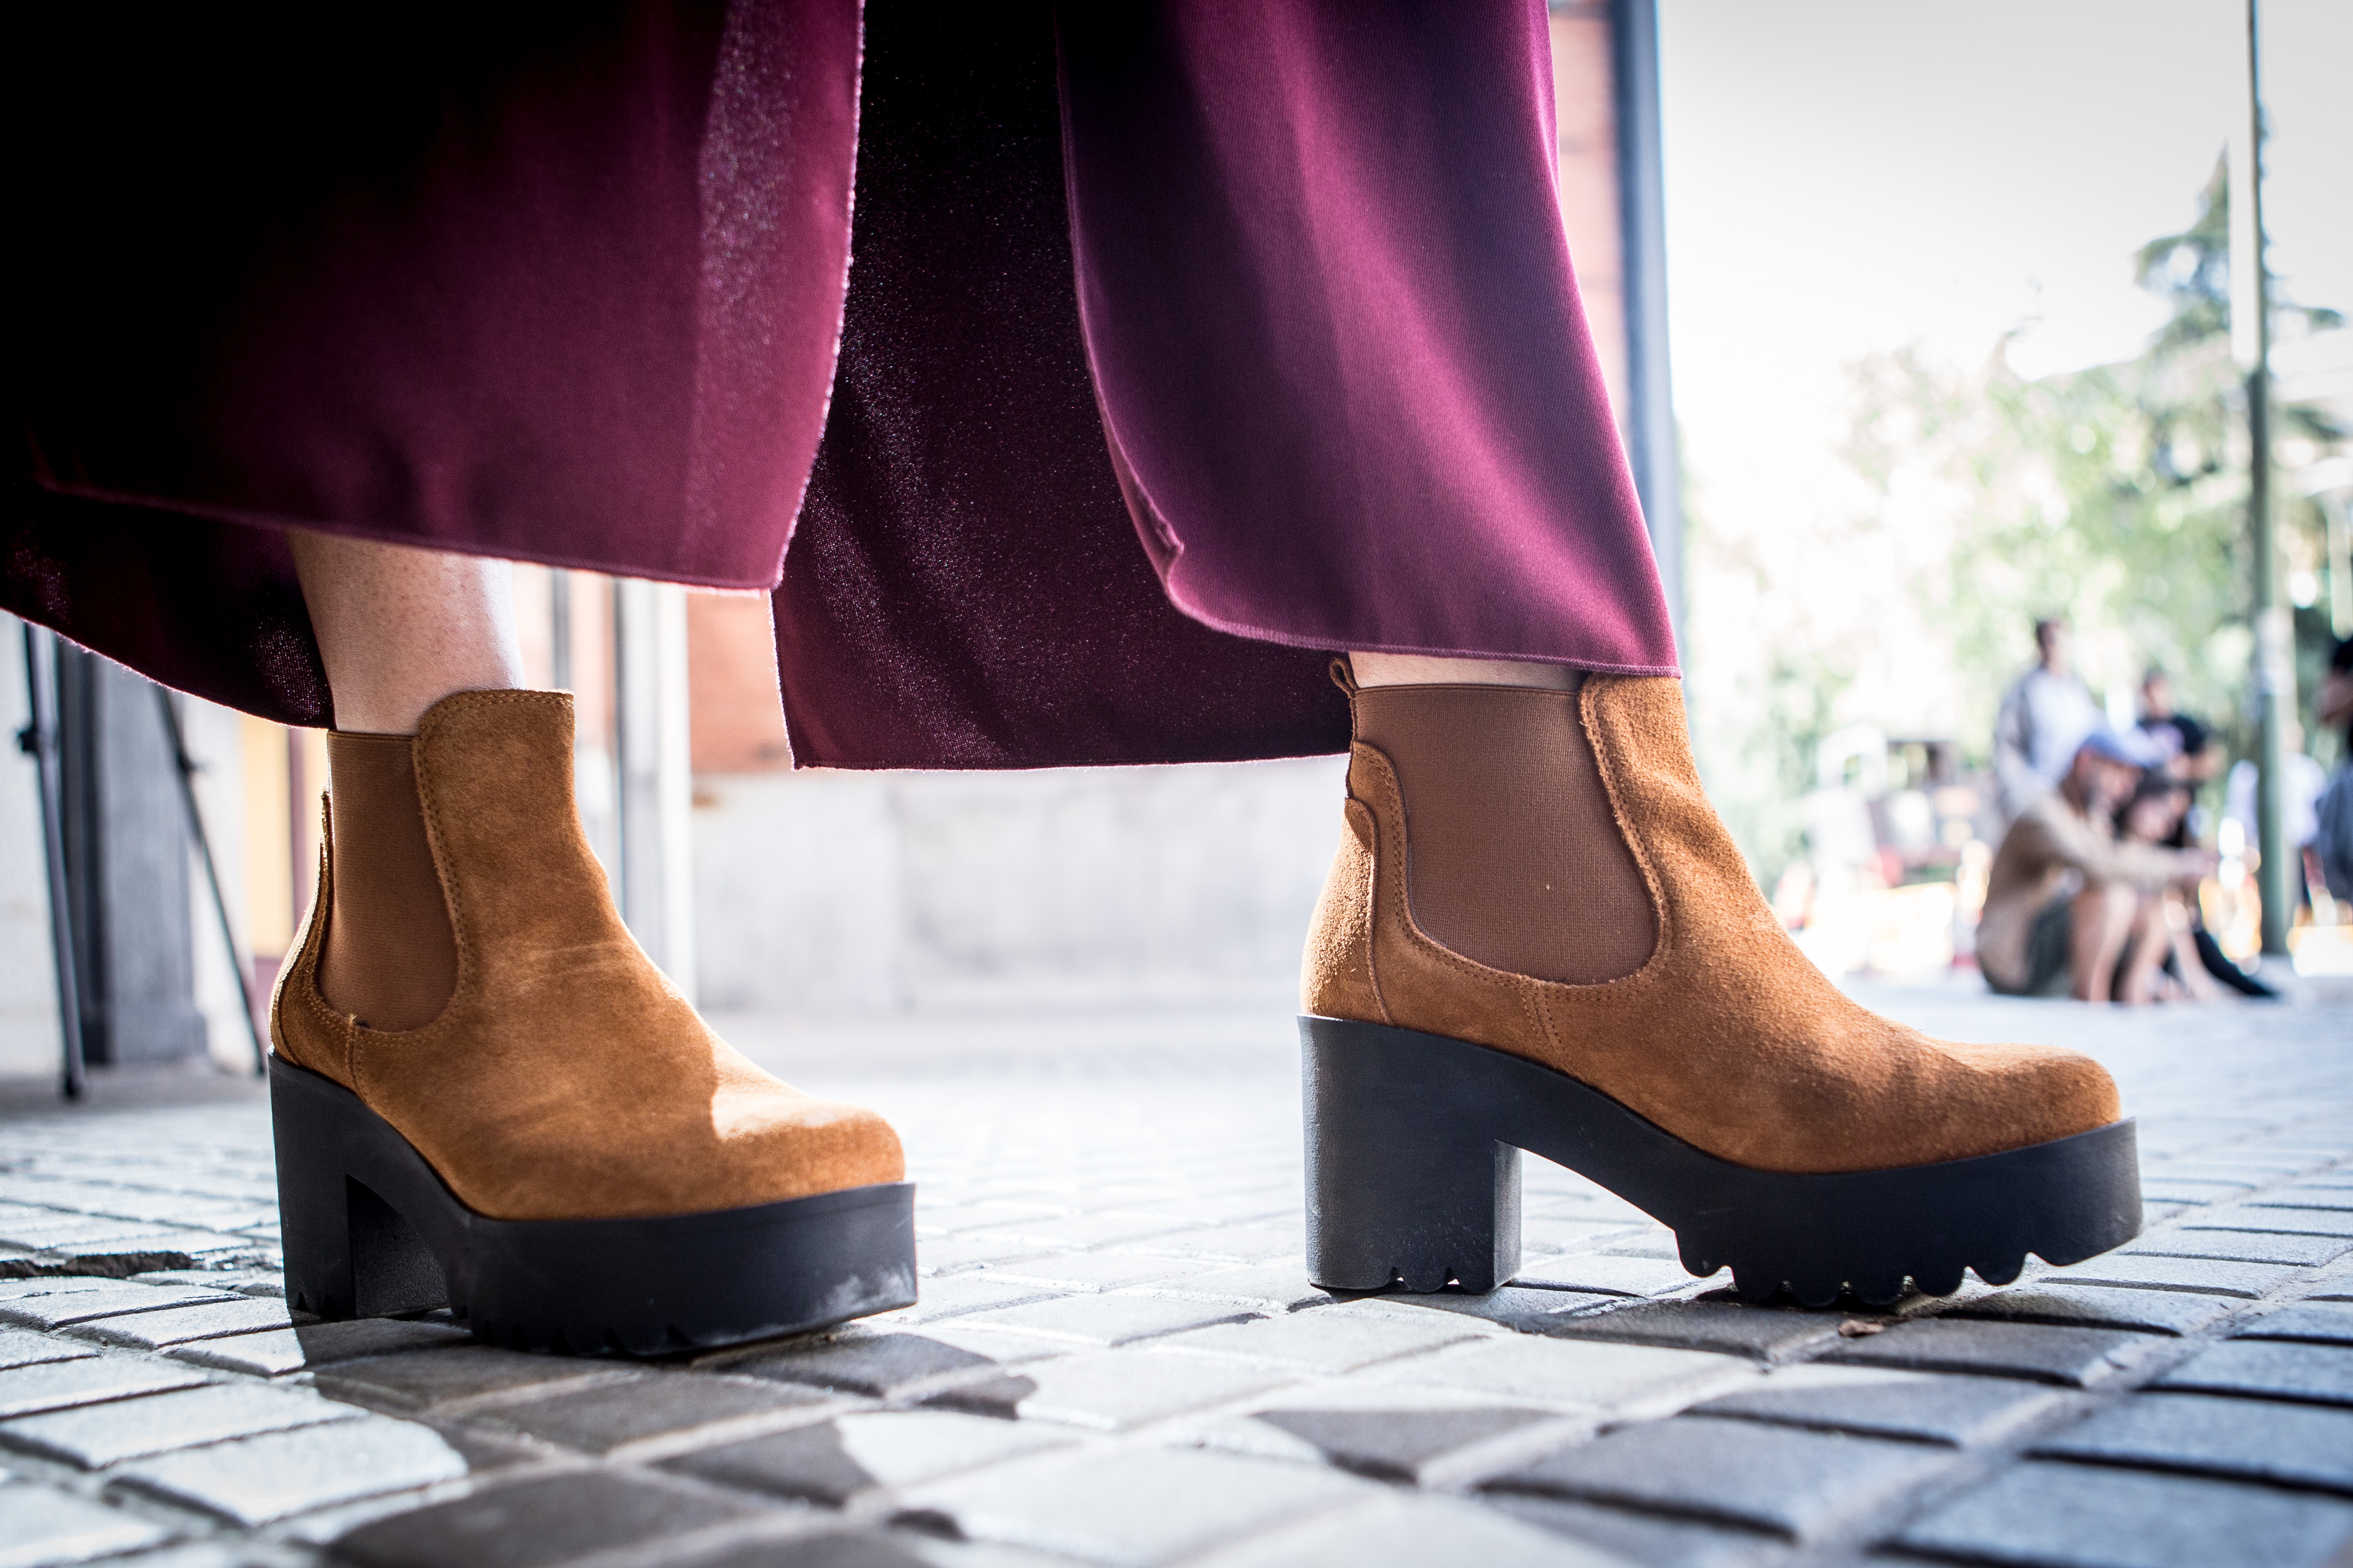 8d9f6c1a84d85 How To Protect Suede Shoes From Snow & Make Sure Your Favorite Boots Last —  PHOTOS